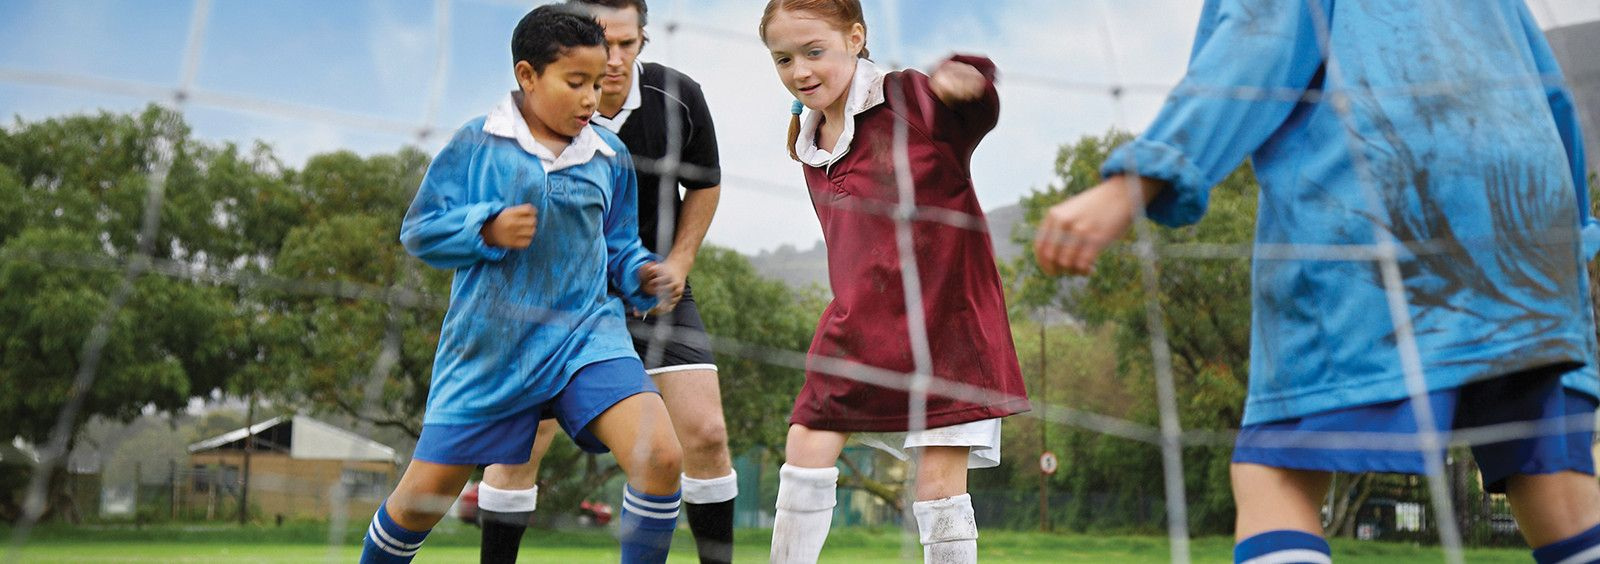 Sports Concussions 101 Kids health, Helping kids, Kids